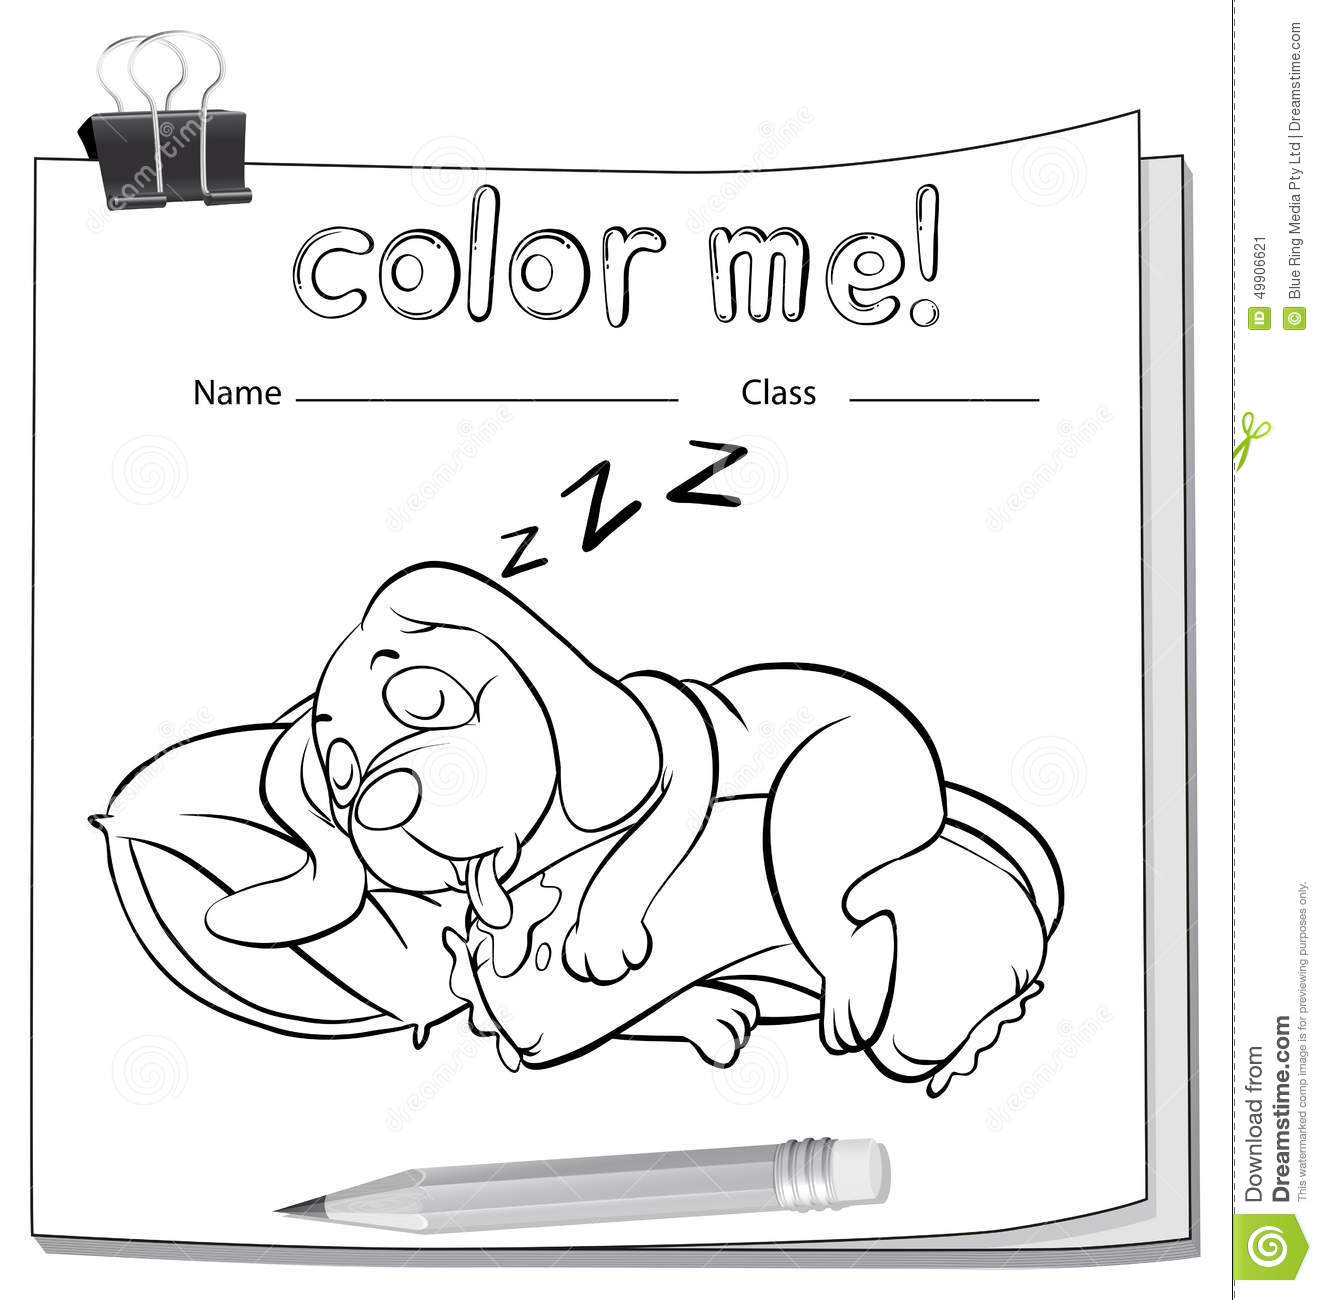 A Color Me Worksheet With A Sleeping Dog Stock Vector